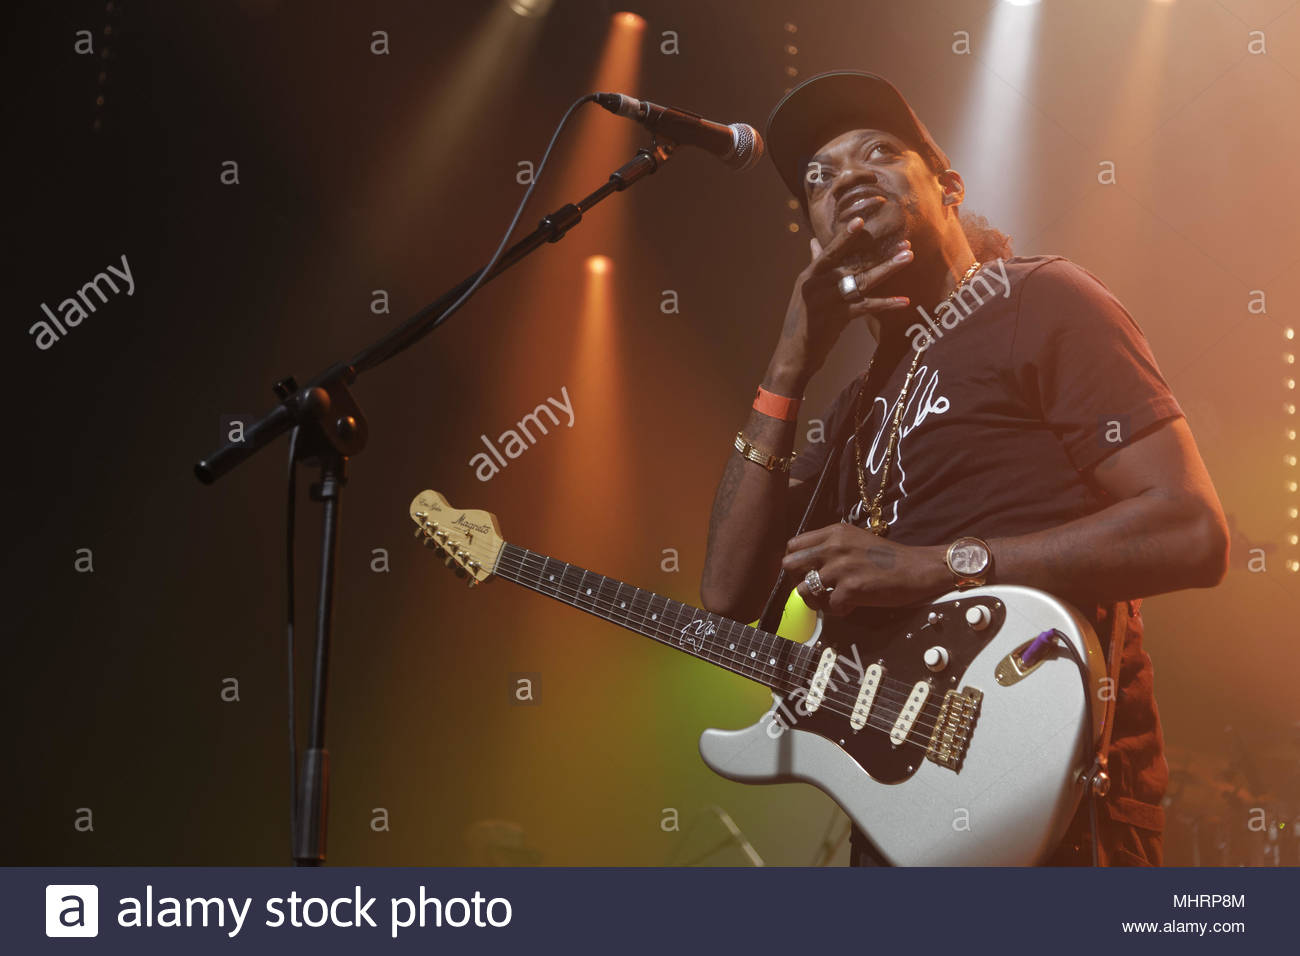 Guitarist Eric Stock Photos & Guitarist Eric Stock Images - Alamy